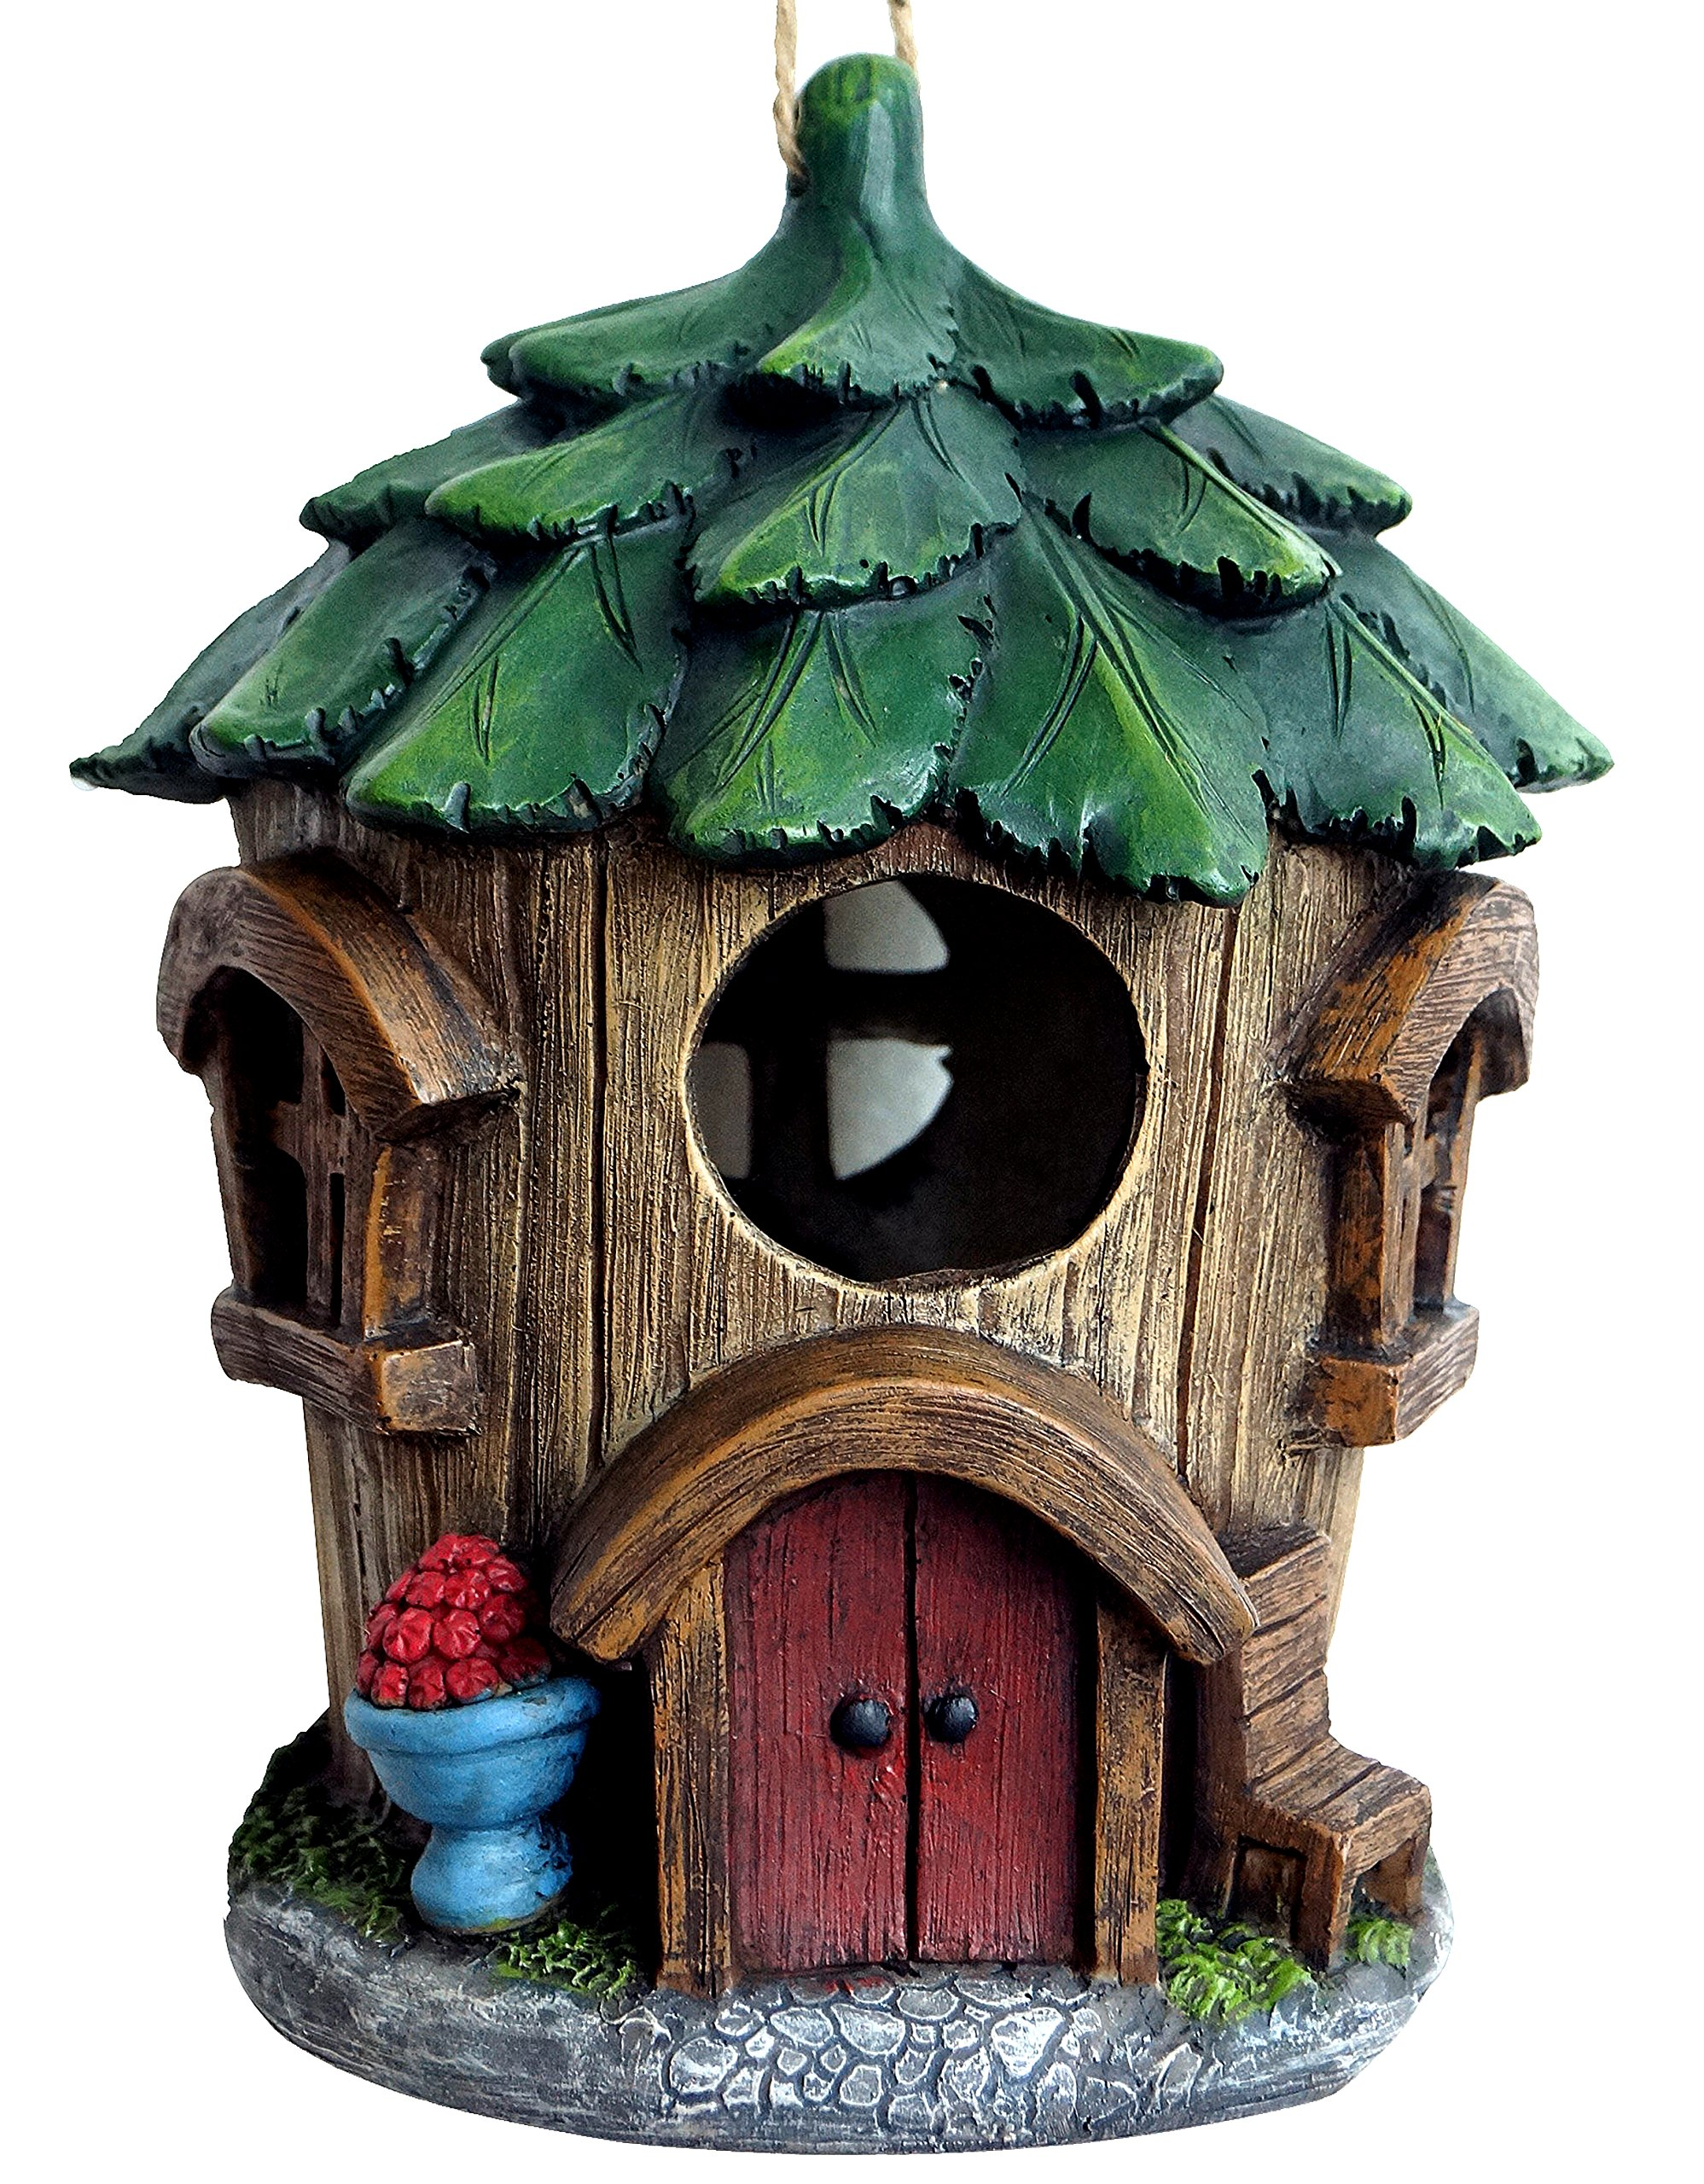 Harmony Fountains The Bright Tree House 9'' Birdhouse - Quaint Woodsy House. HF-BH-002 by